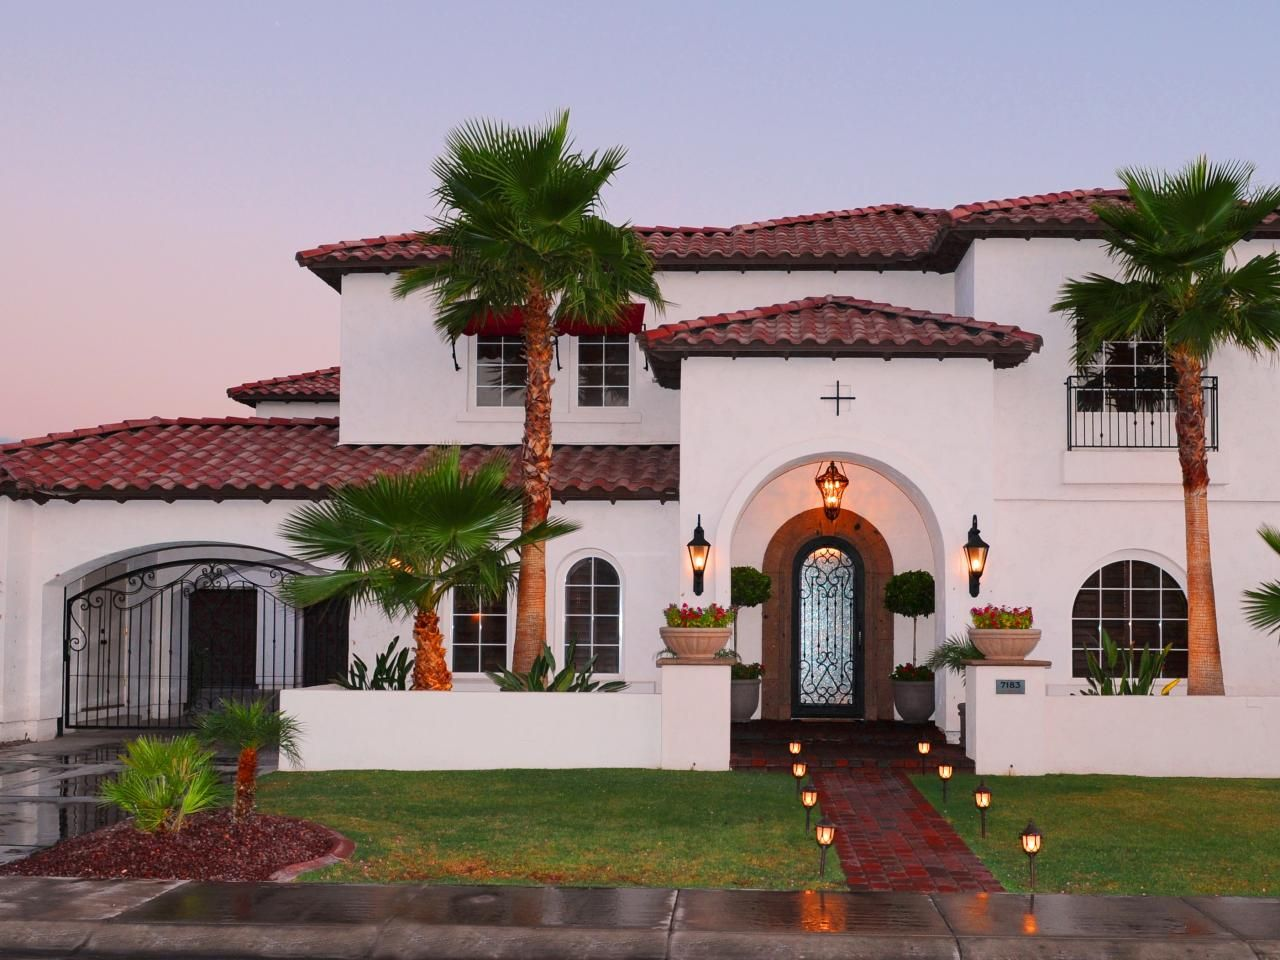 Spanish House Style The Exterior Of This Traditional Spanish Style Home Has A